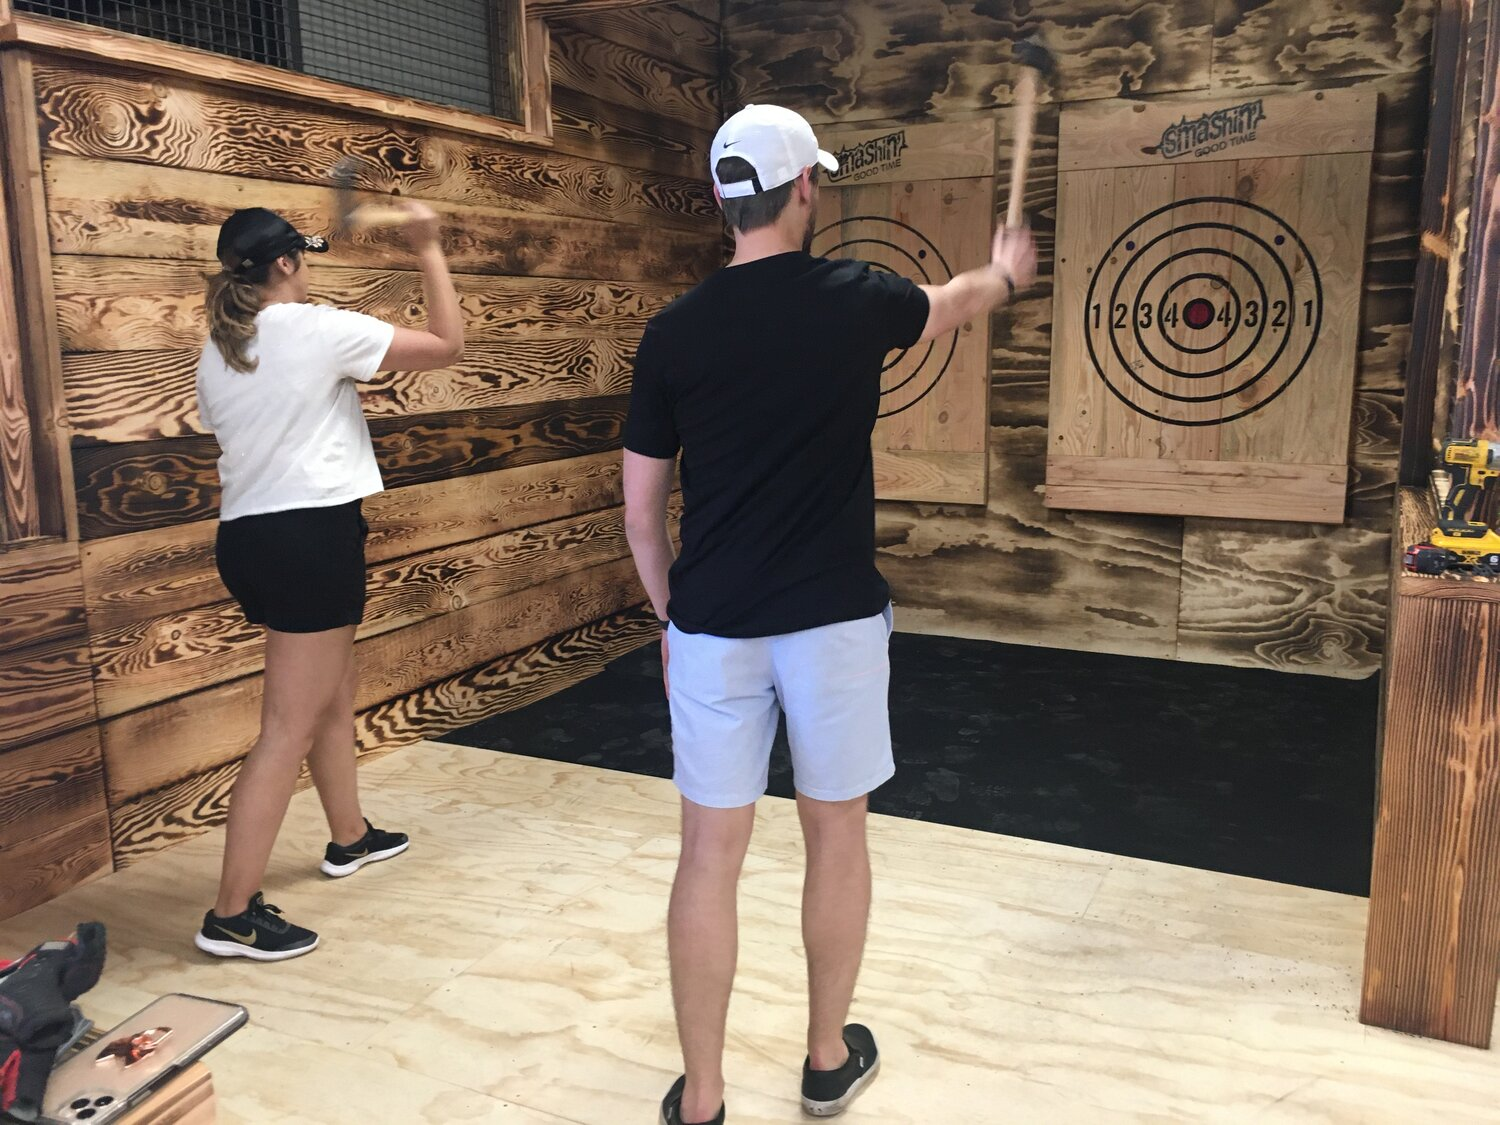 people throwing axes